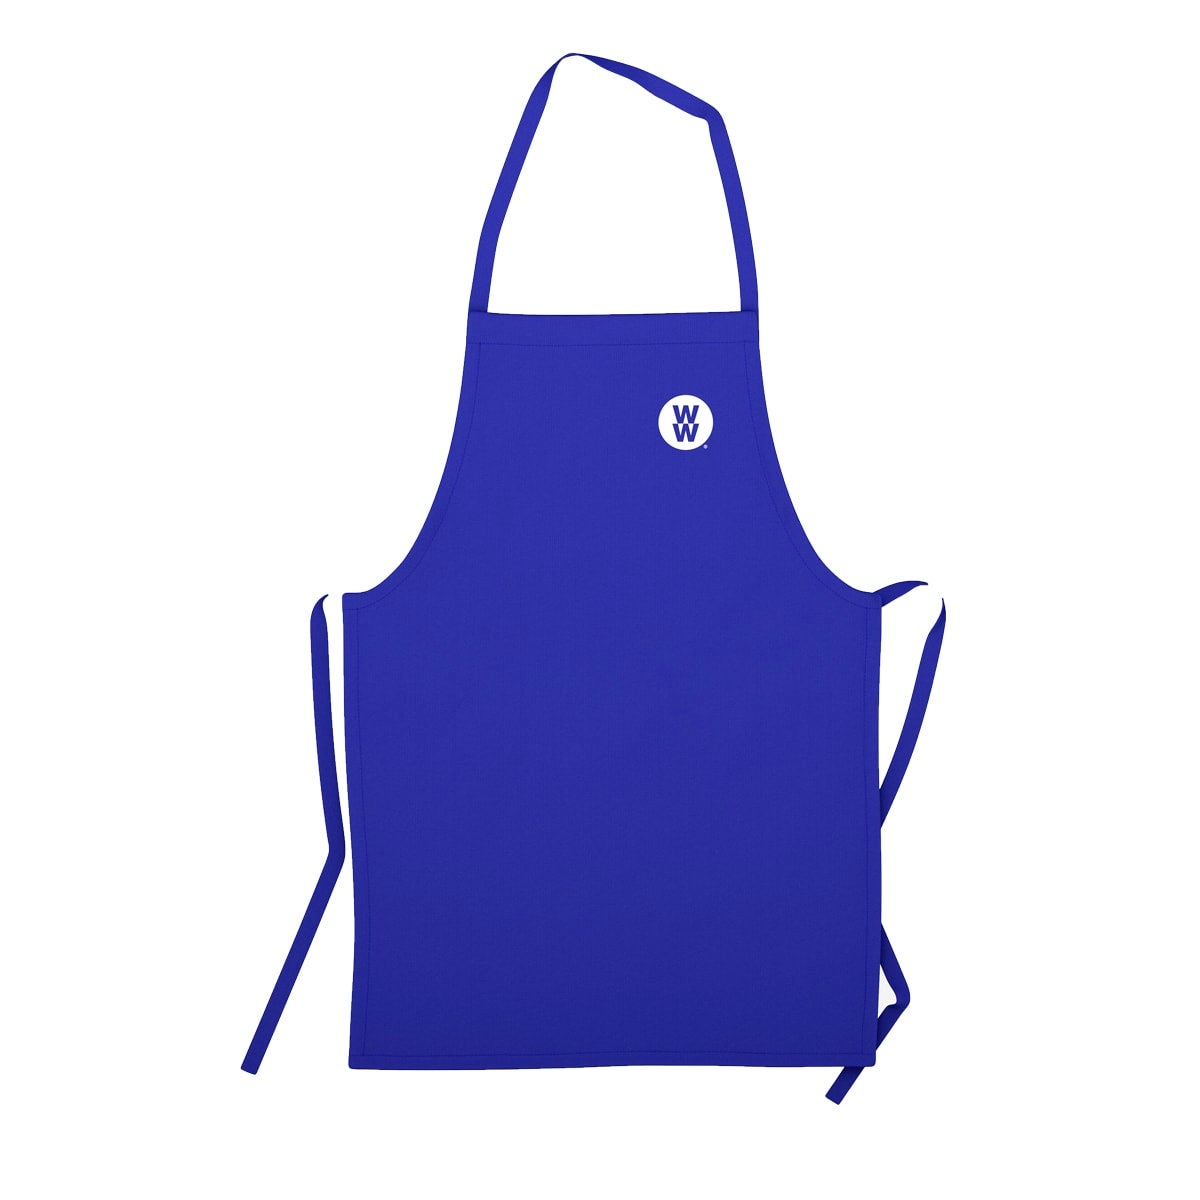 WW Apron, perfect for everyday use, secure tie back and a neck strap to ensure tight fit, colour blue